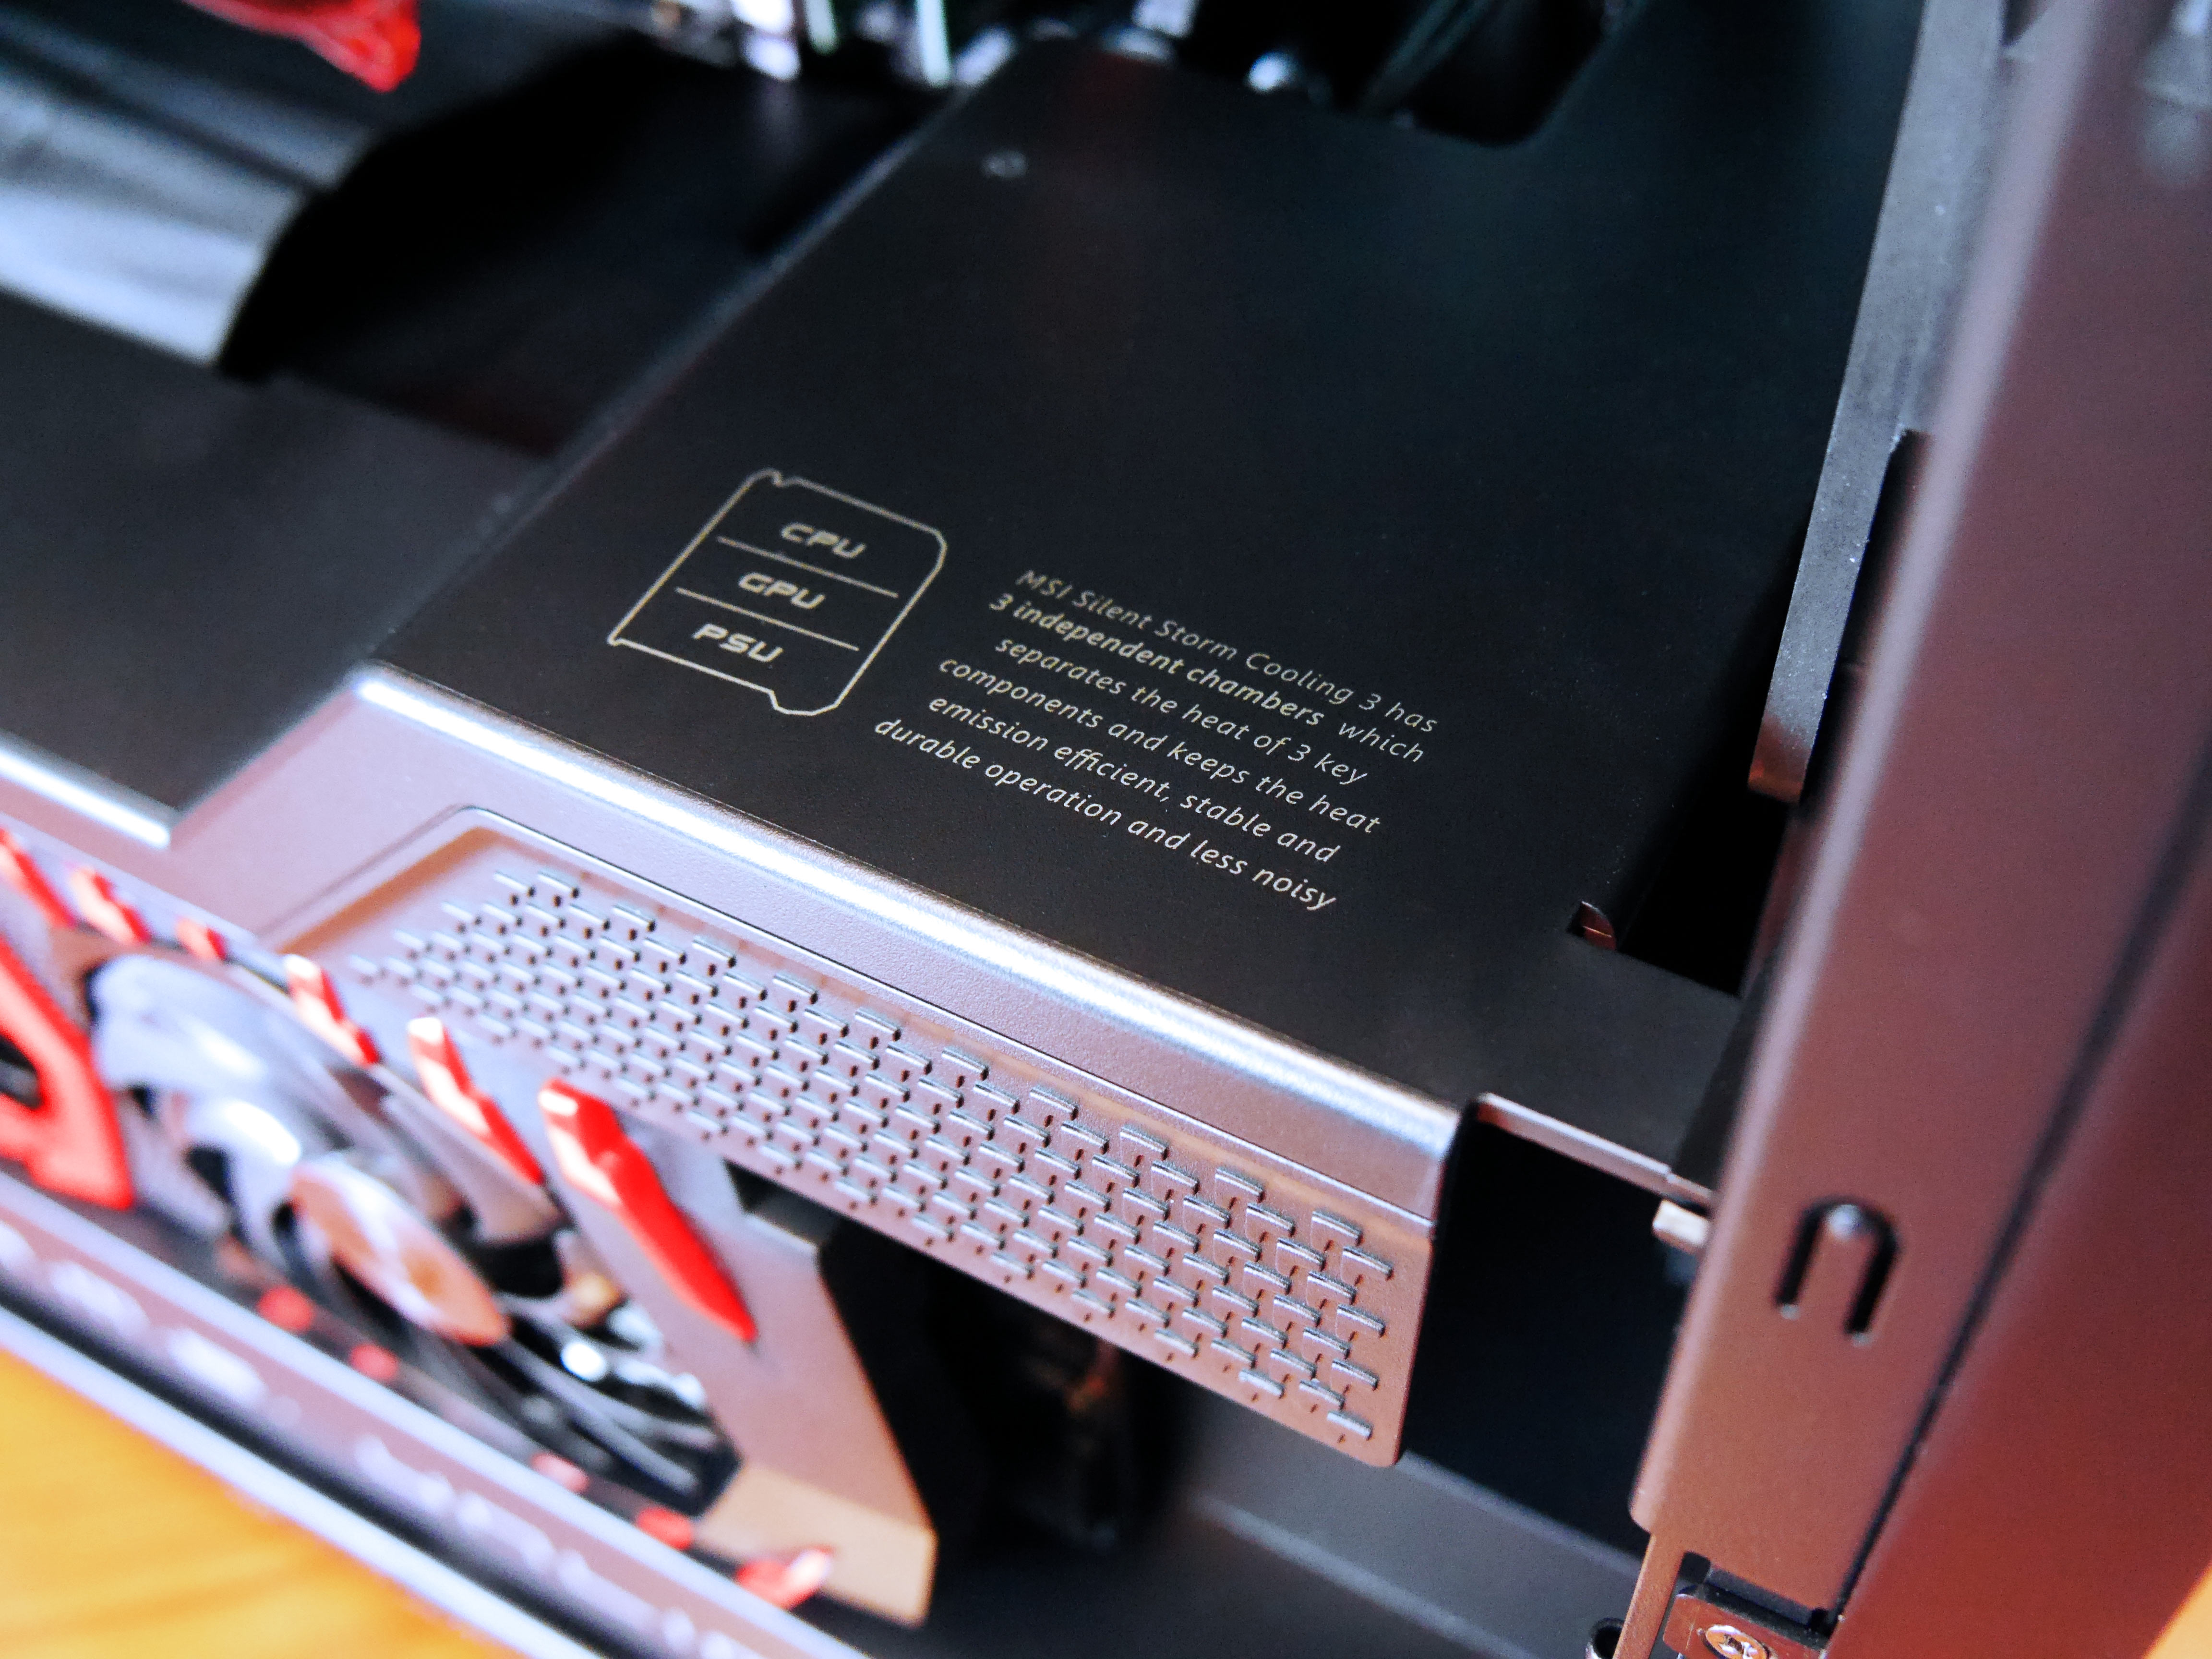 5 Things you need to know about the MSI Infinite Gaming PC